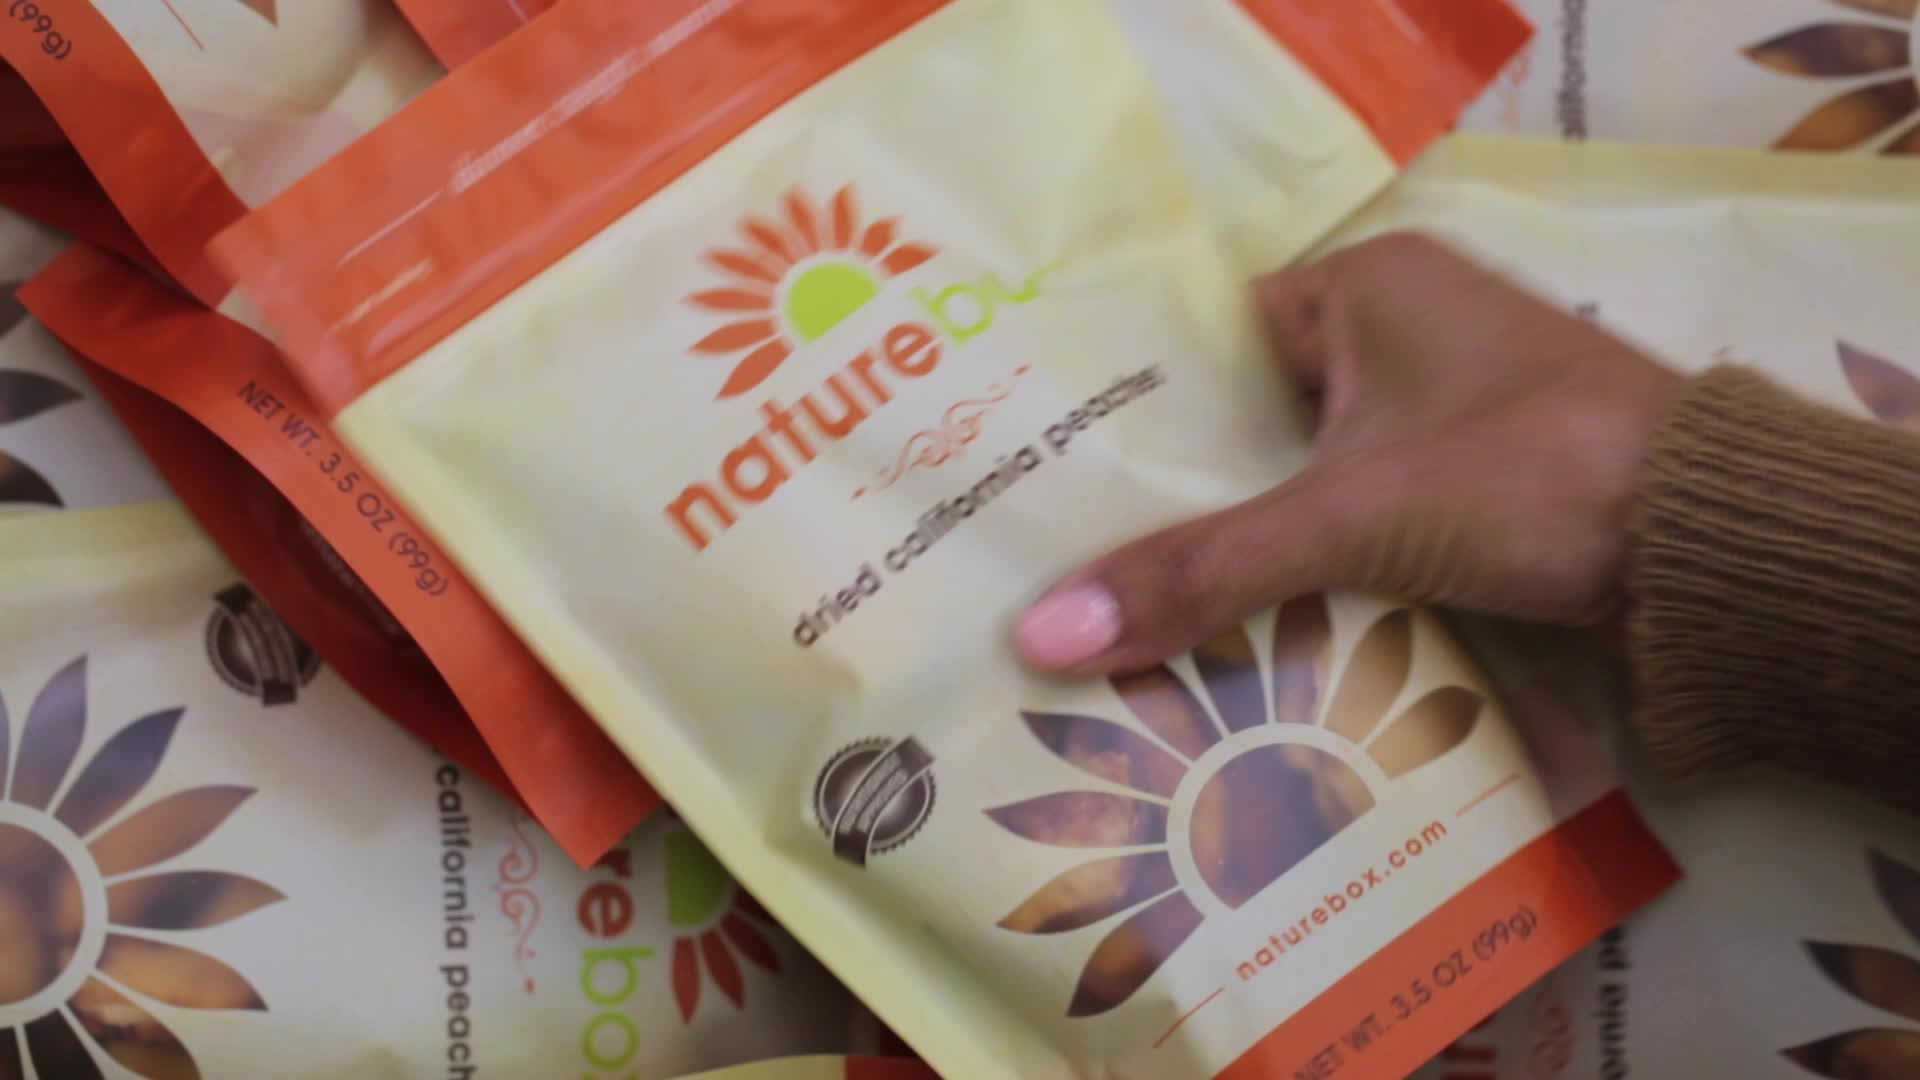 NatureBox Raises $30 Million in 'Series C' Round Funding, Securing Nearly $60 Million to Date